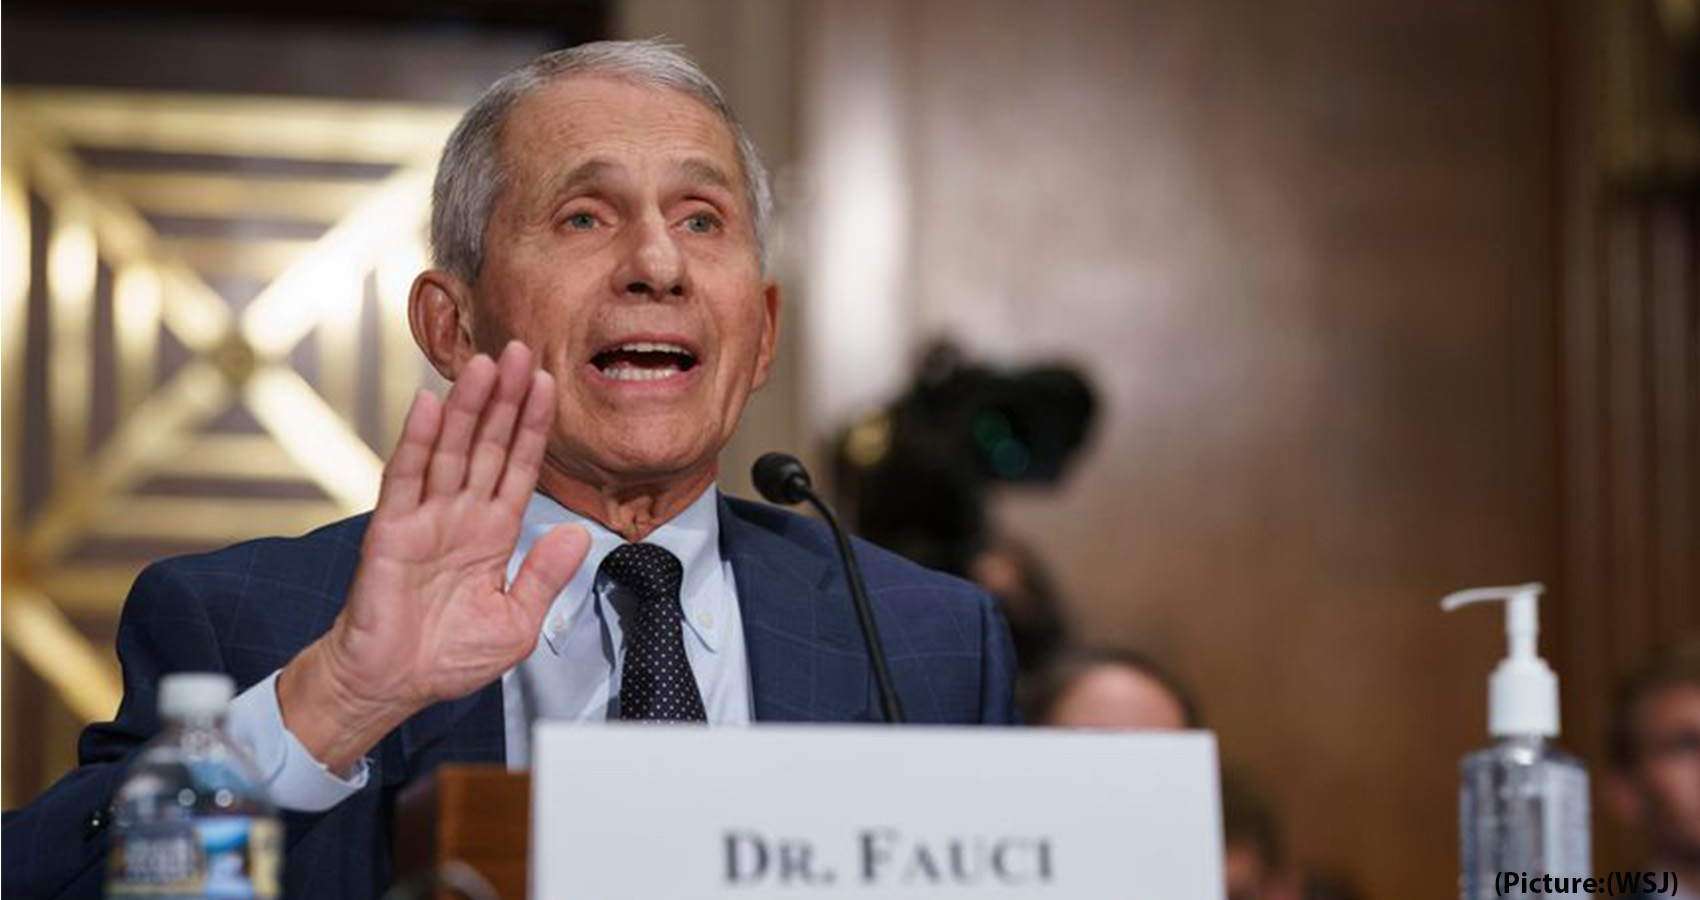 Dr. Fauci Warns Of 'Things Going to Get Worse' With the Delta Variant